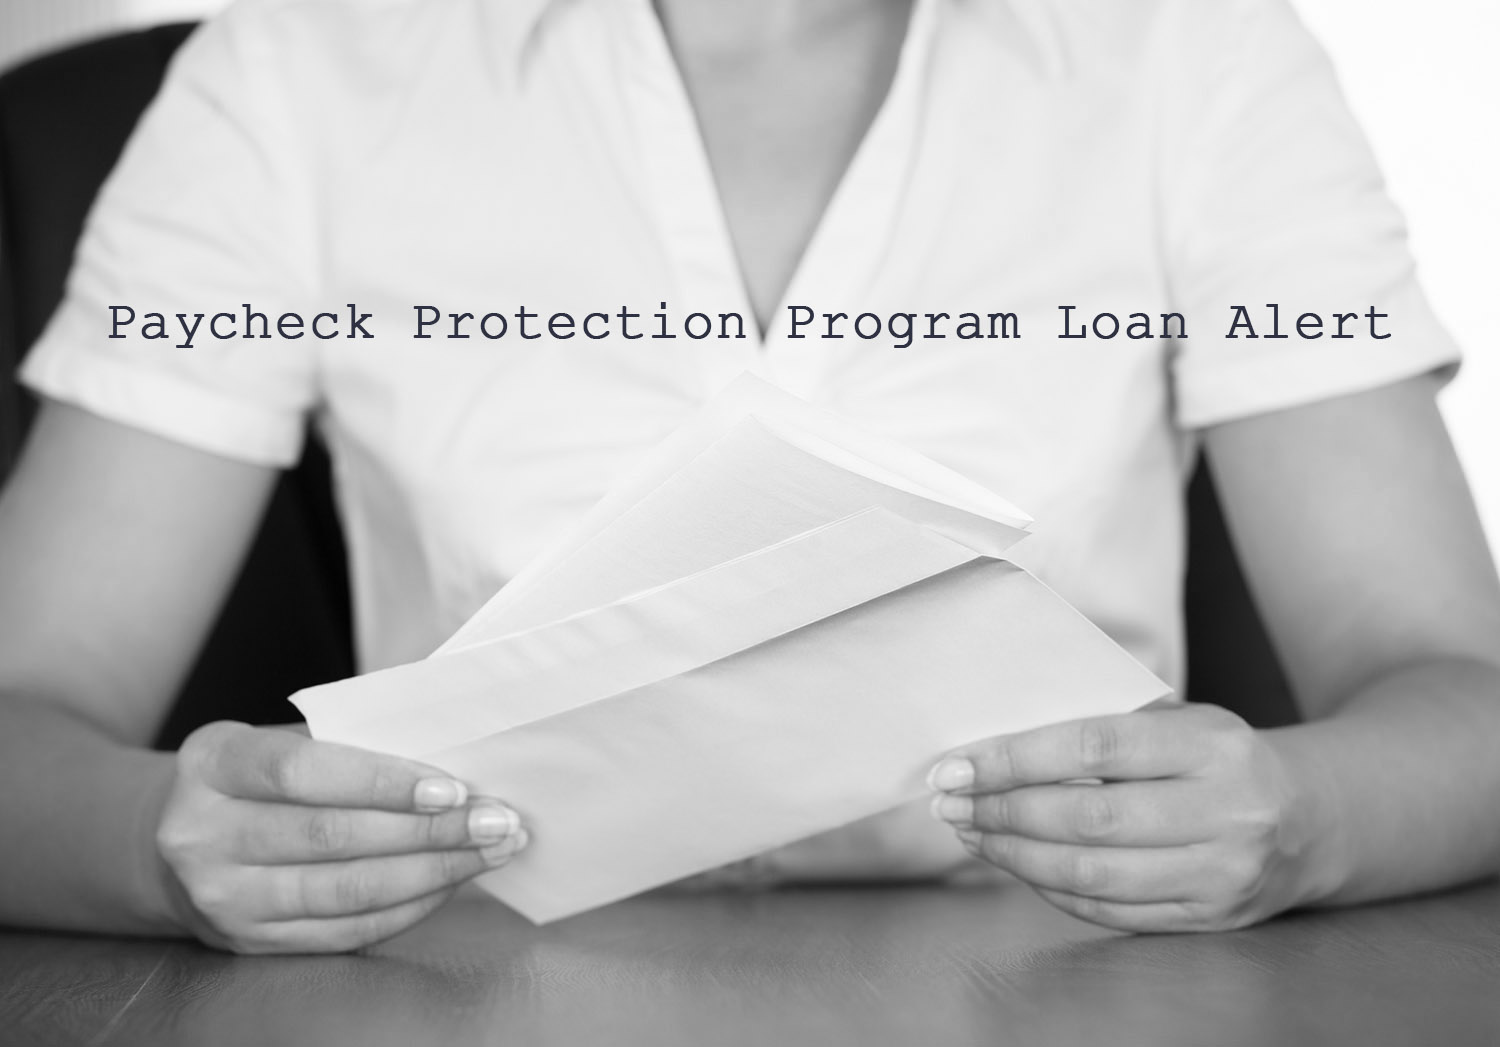 Paycheck Protection Program Loan Alert